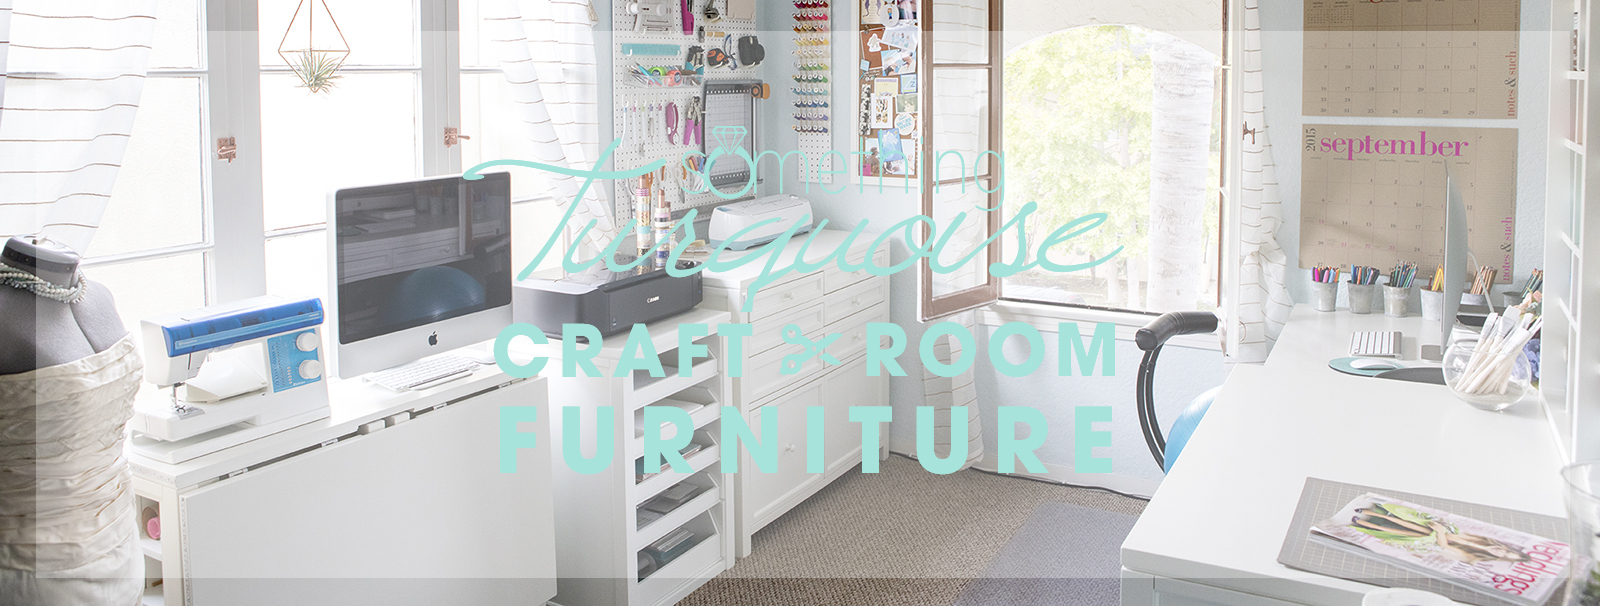 Something Turquoise Craft Room + Blog Office full of Martha Stewart Craft Furniture